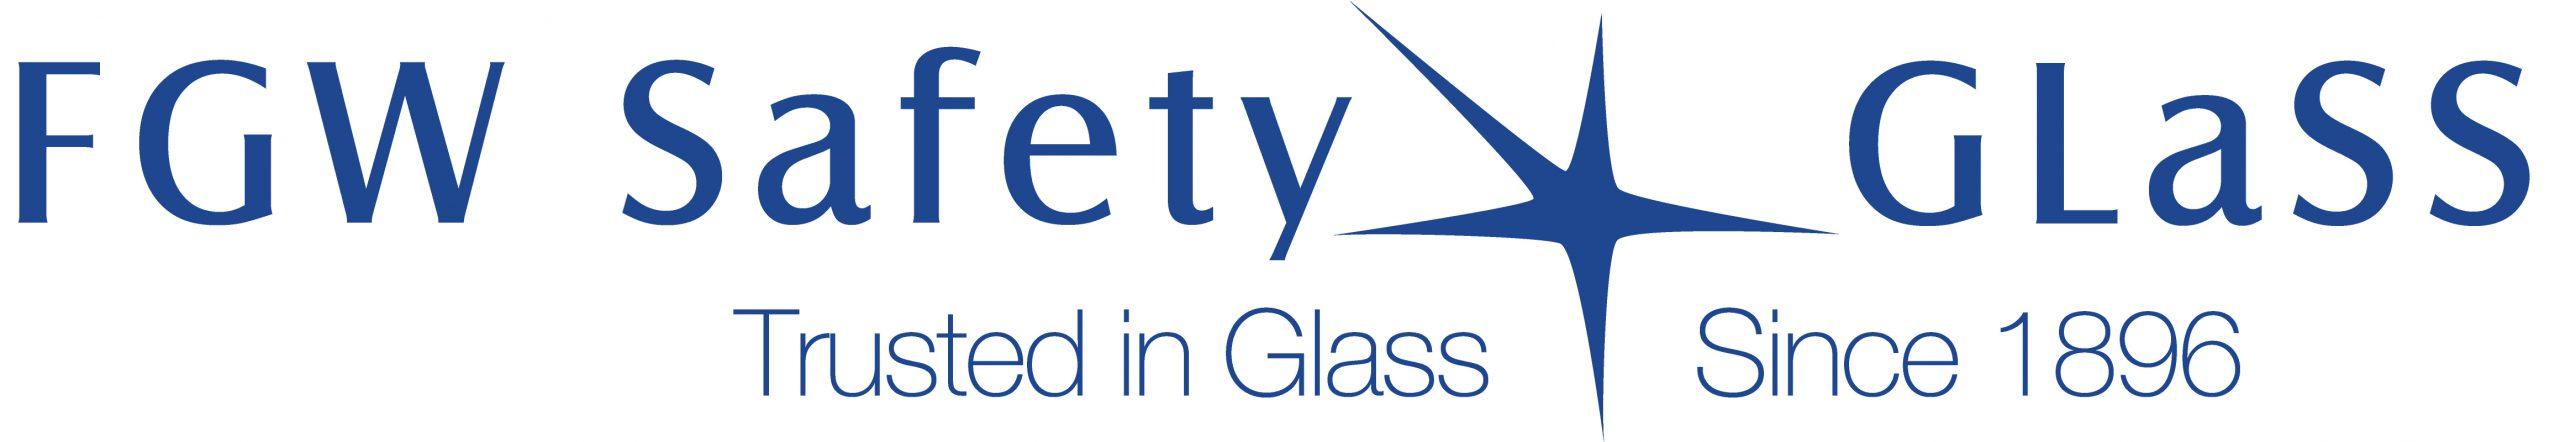 FGW Safety Glass